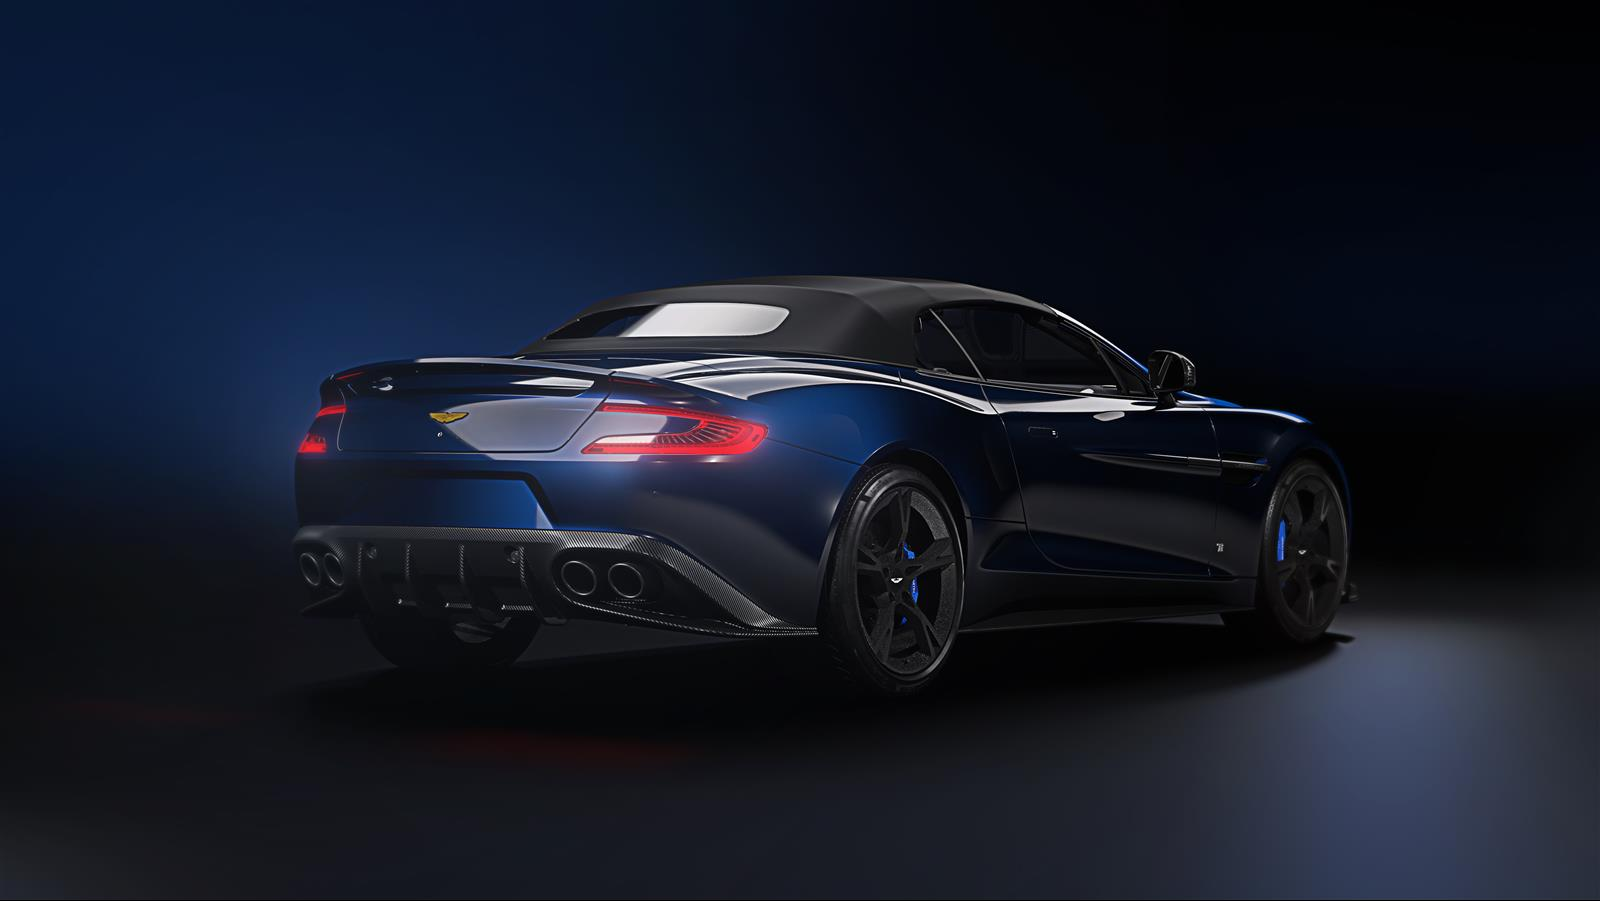 Aston Martin Vanquish S_Tom Brady Signature Edition_02_Arab-Motor-World